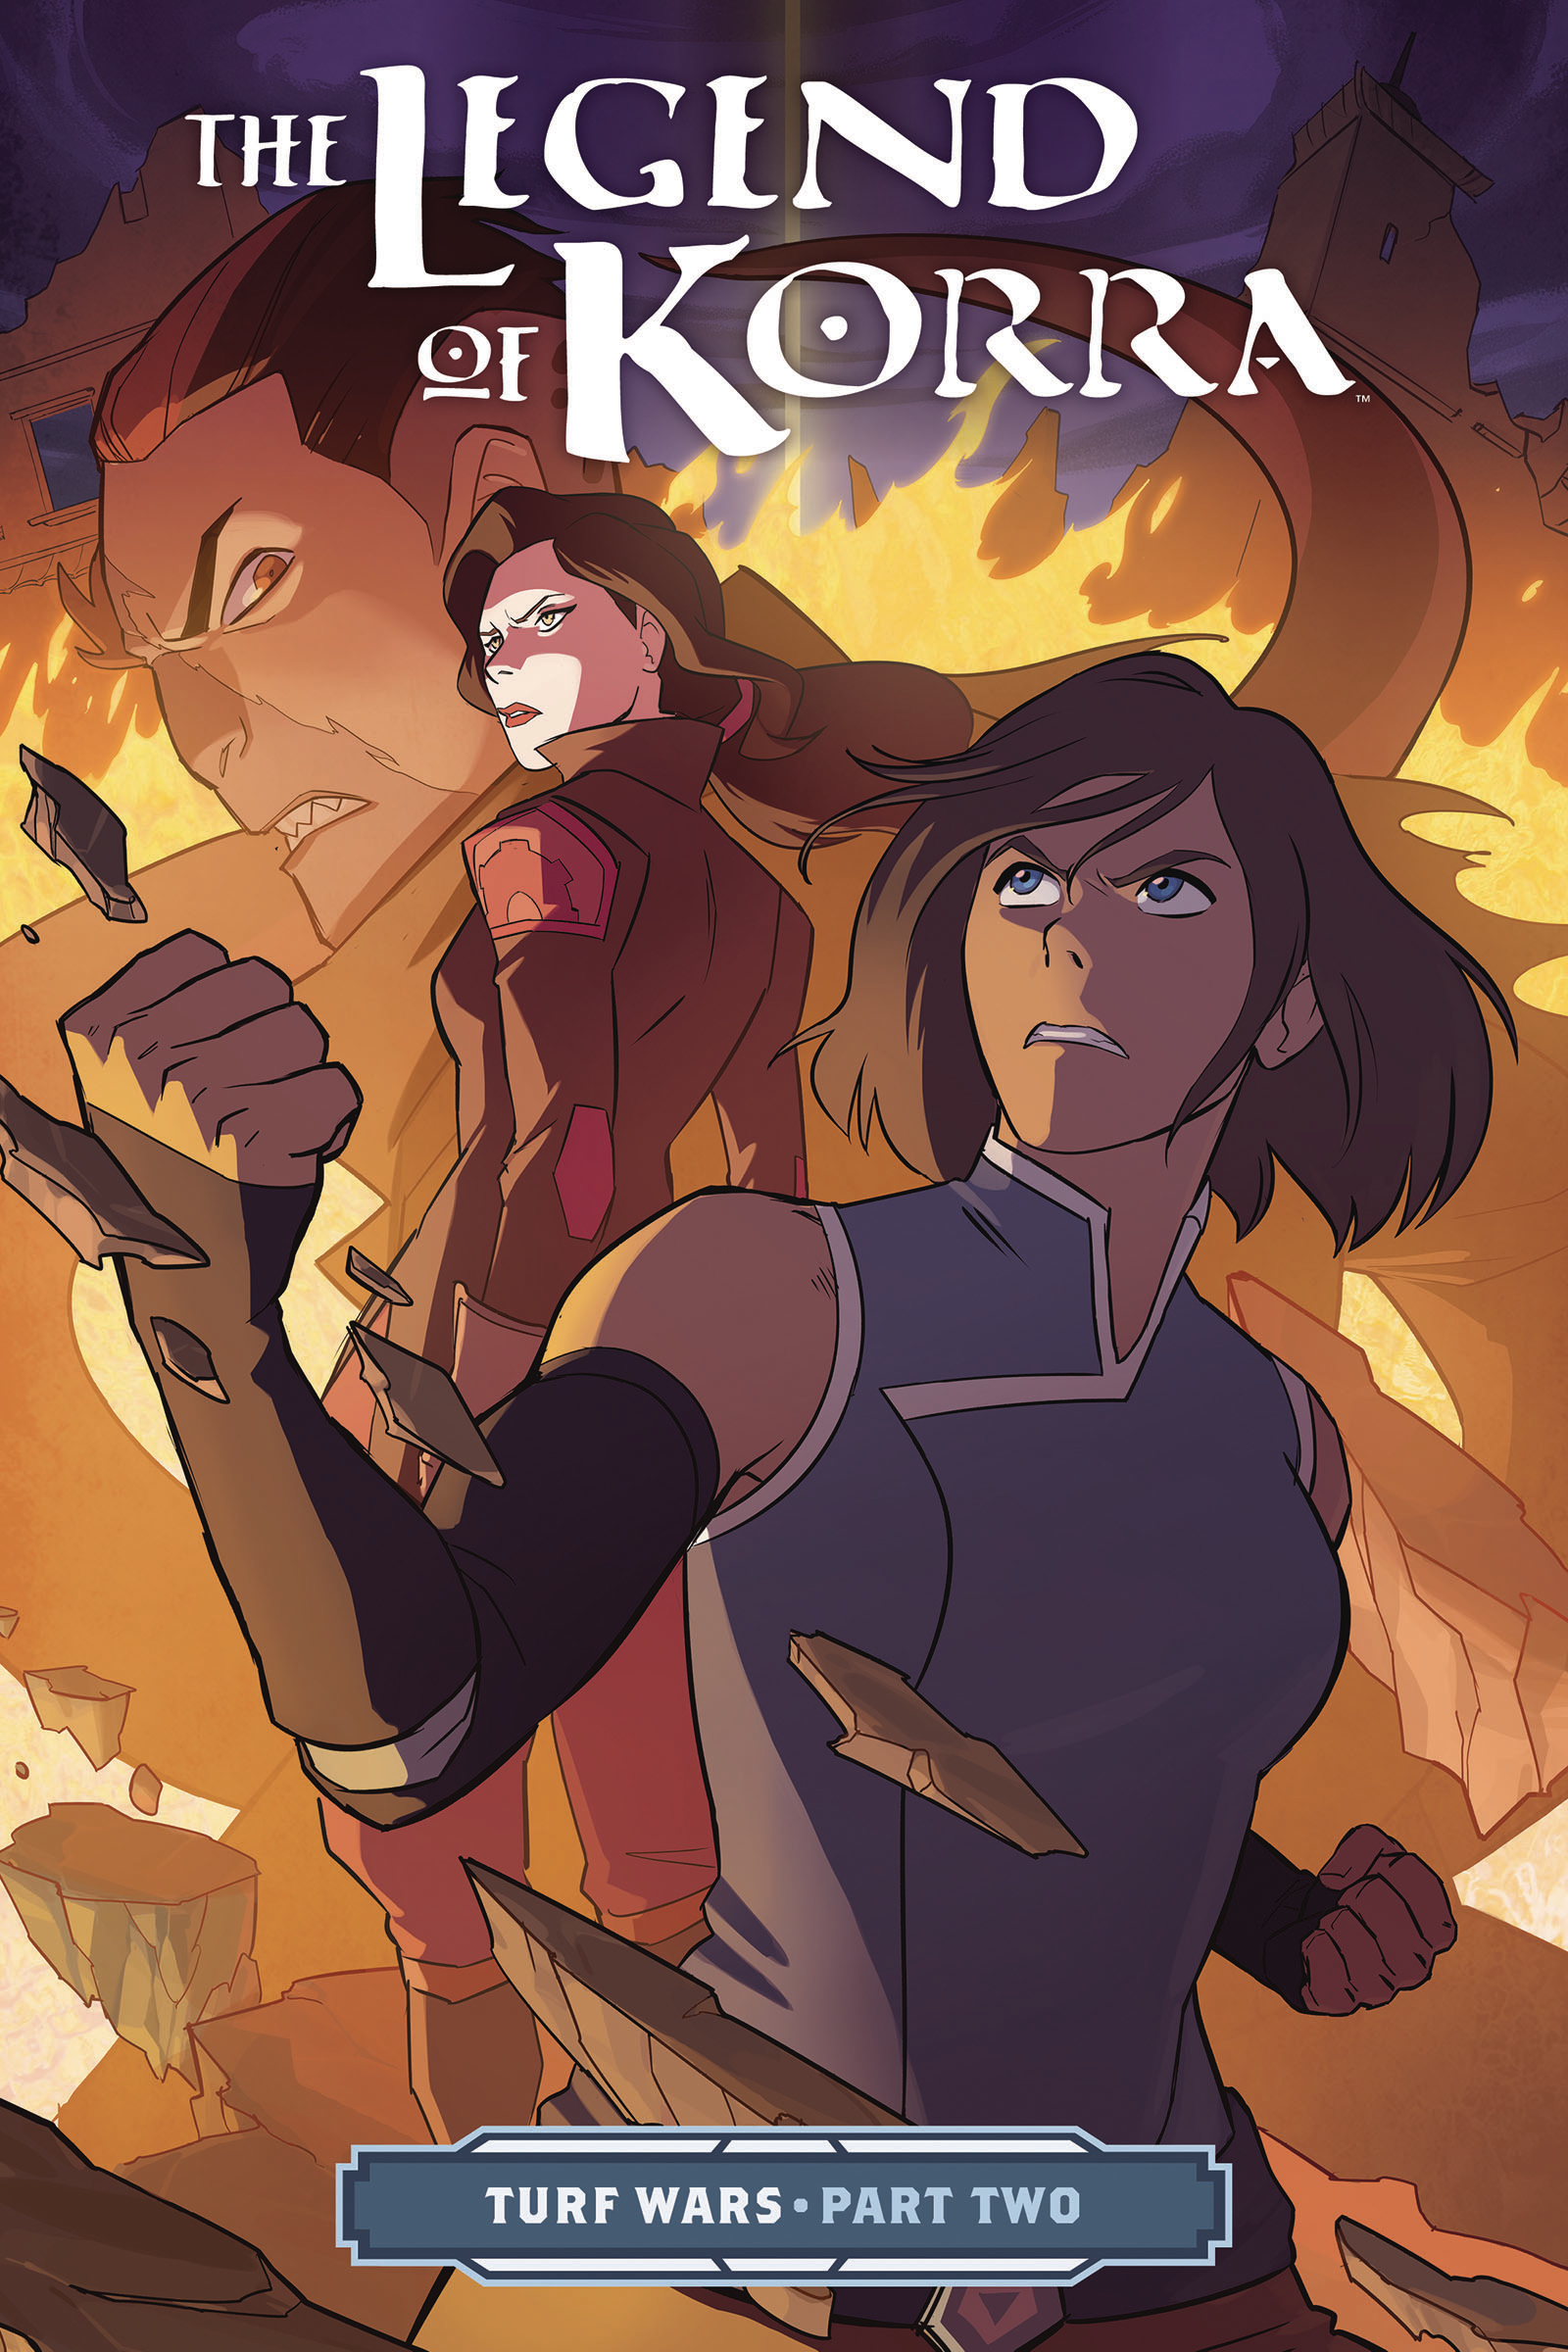 LEGEND OF KORRA TP VOL 02 TURF WARS PT 2